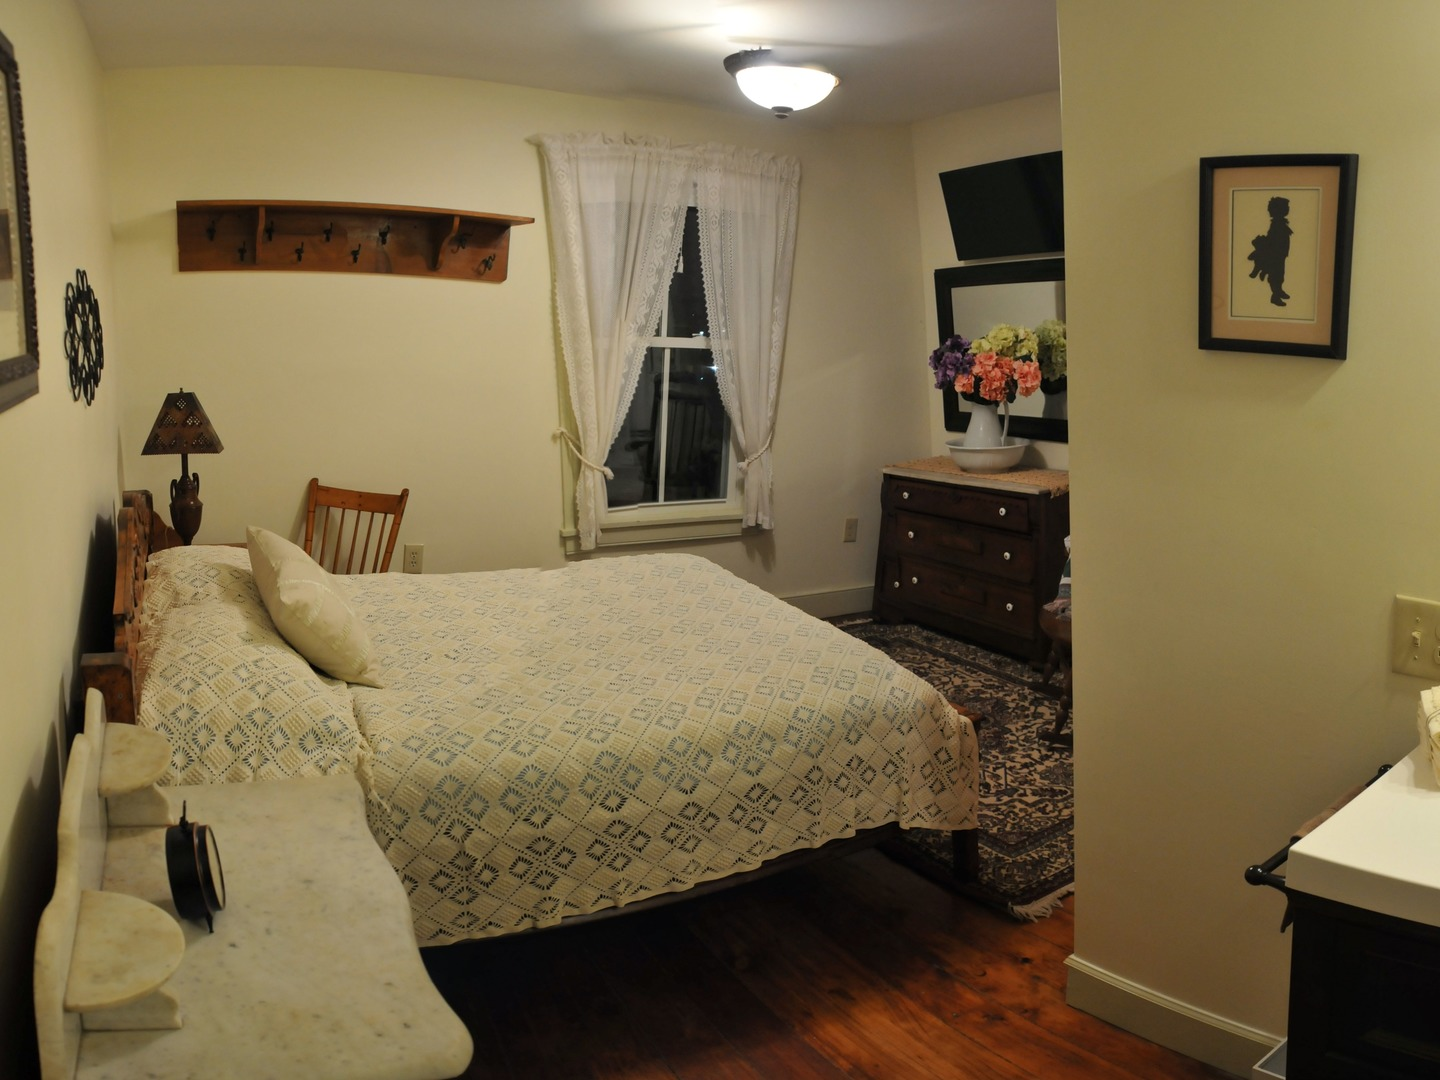 A bedroom with a bed and a mirror in a room at Fulling Mill Inn and Restaurant.